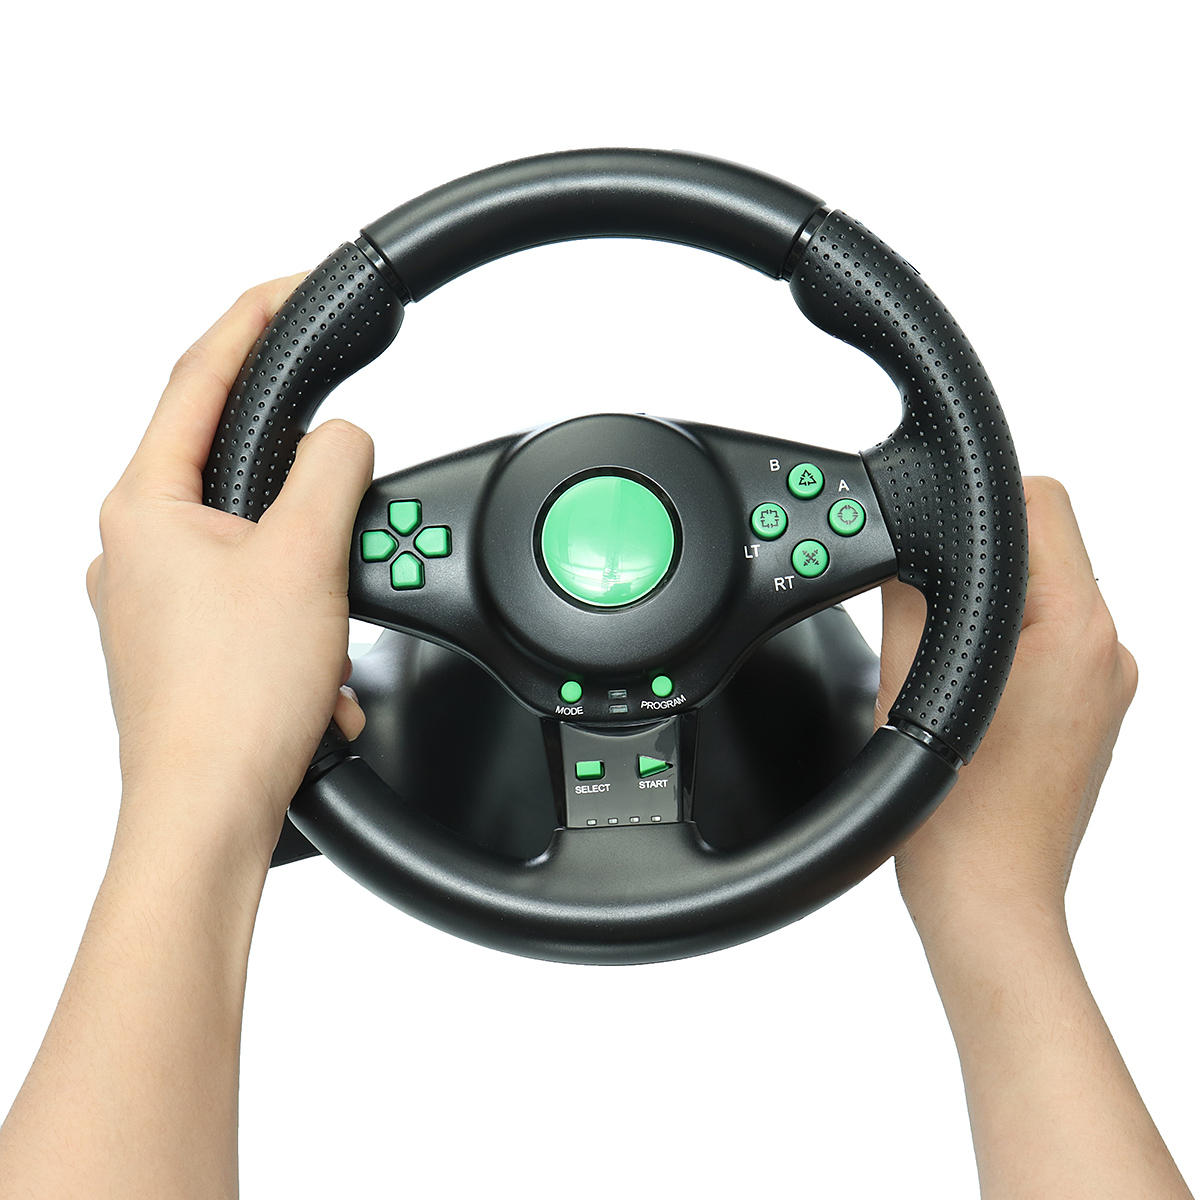 Racing Game Steering Wheel For Xbox 360 Game Console Ps2 For Ps3 Pc